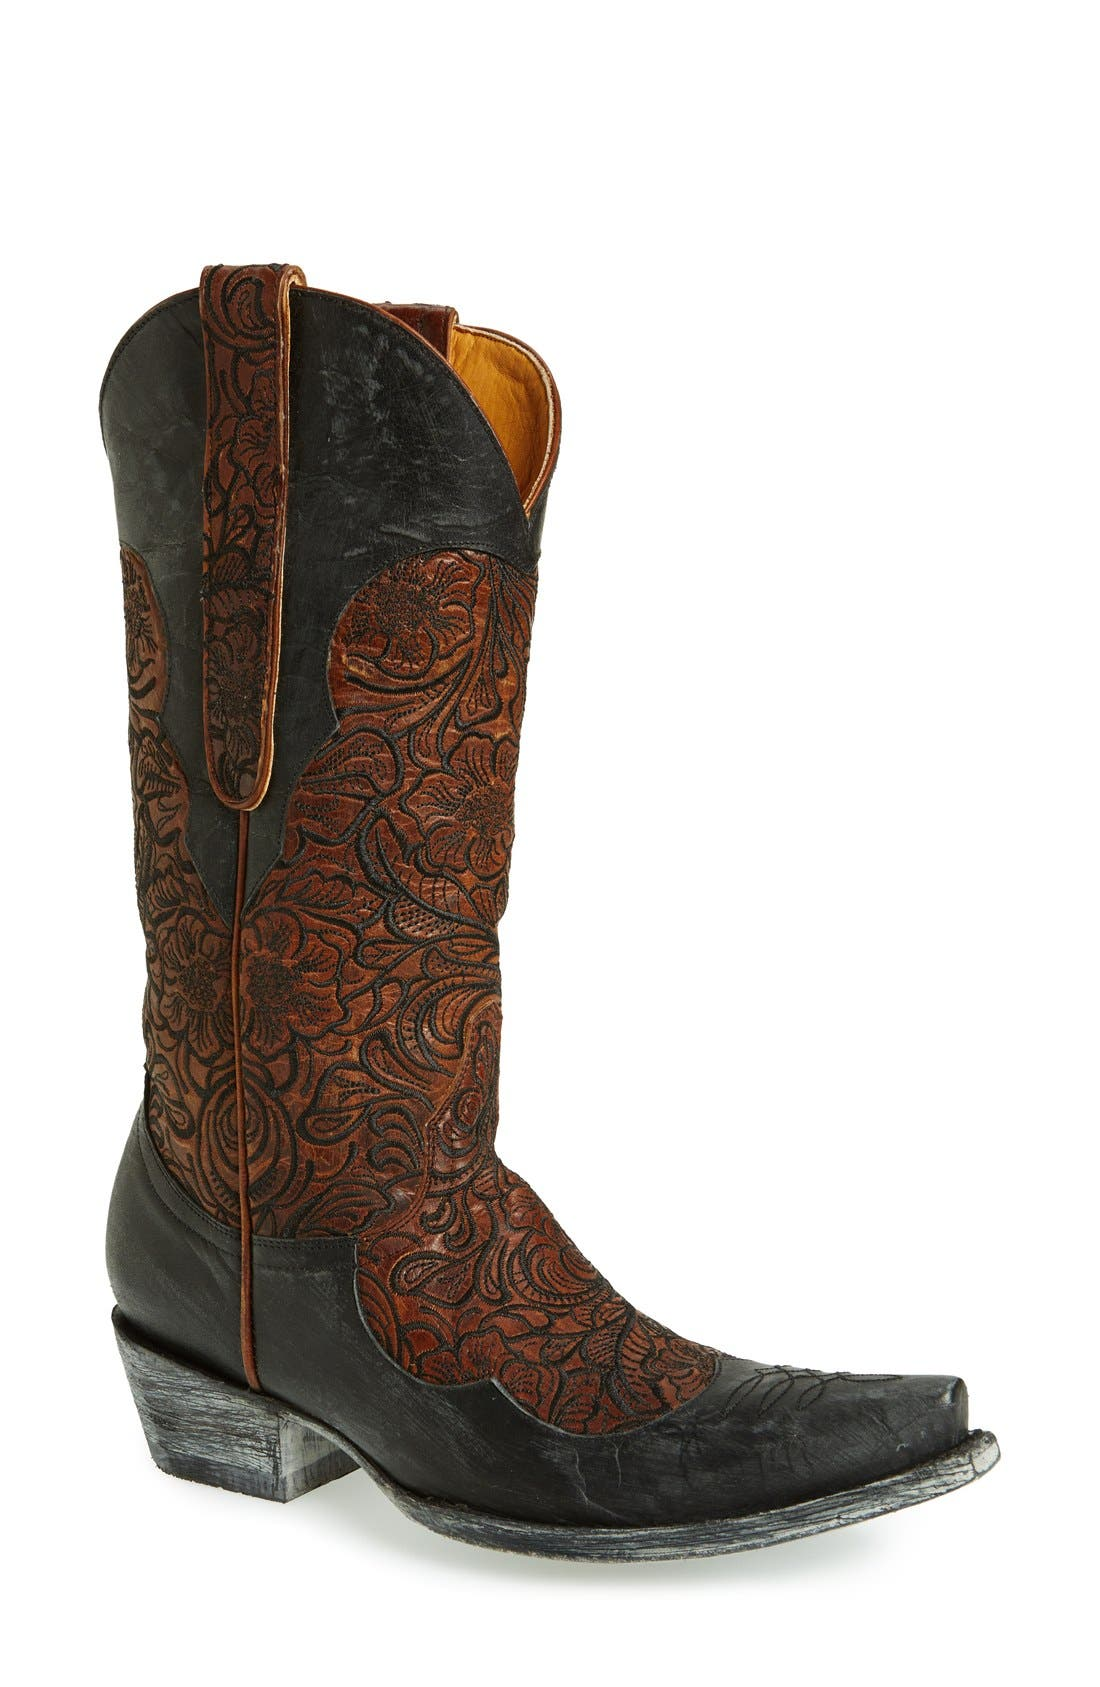 Main Image - Old Gringo 'Feita' Floral Embroidered Leather Boot (Women)